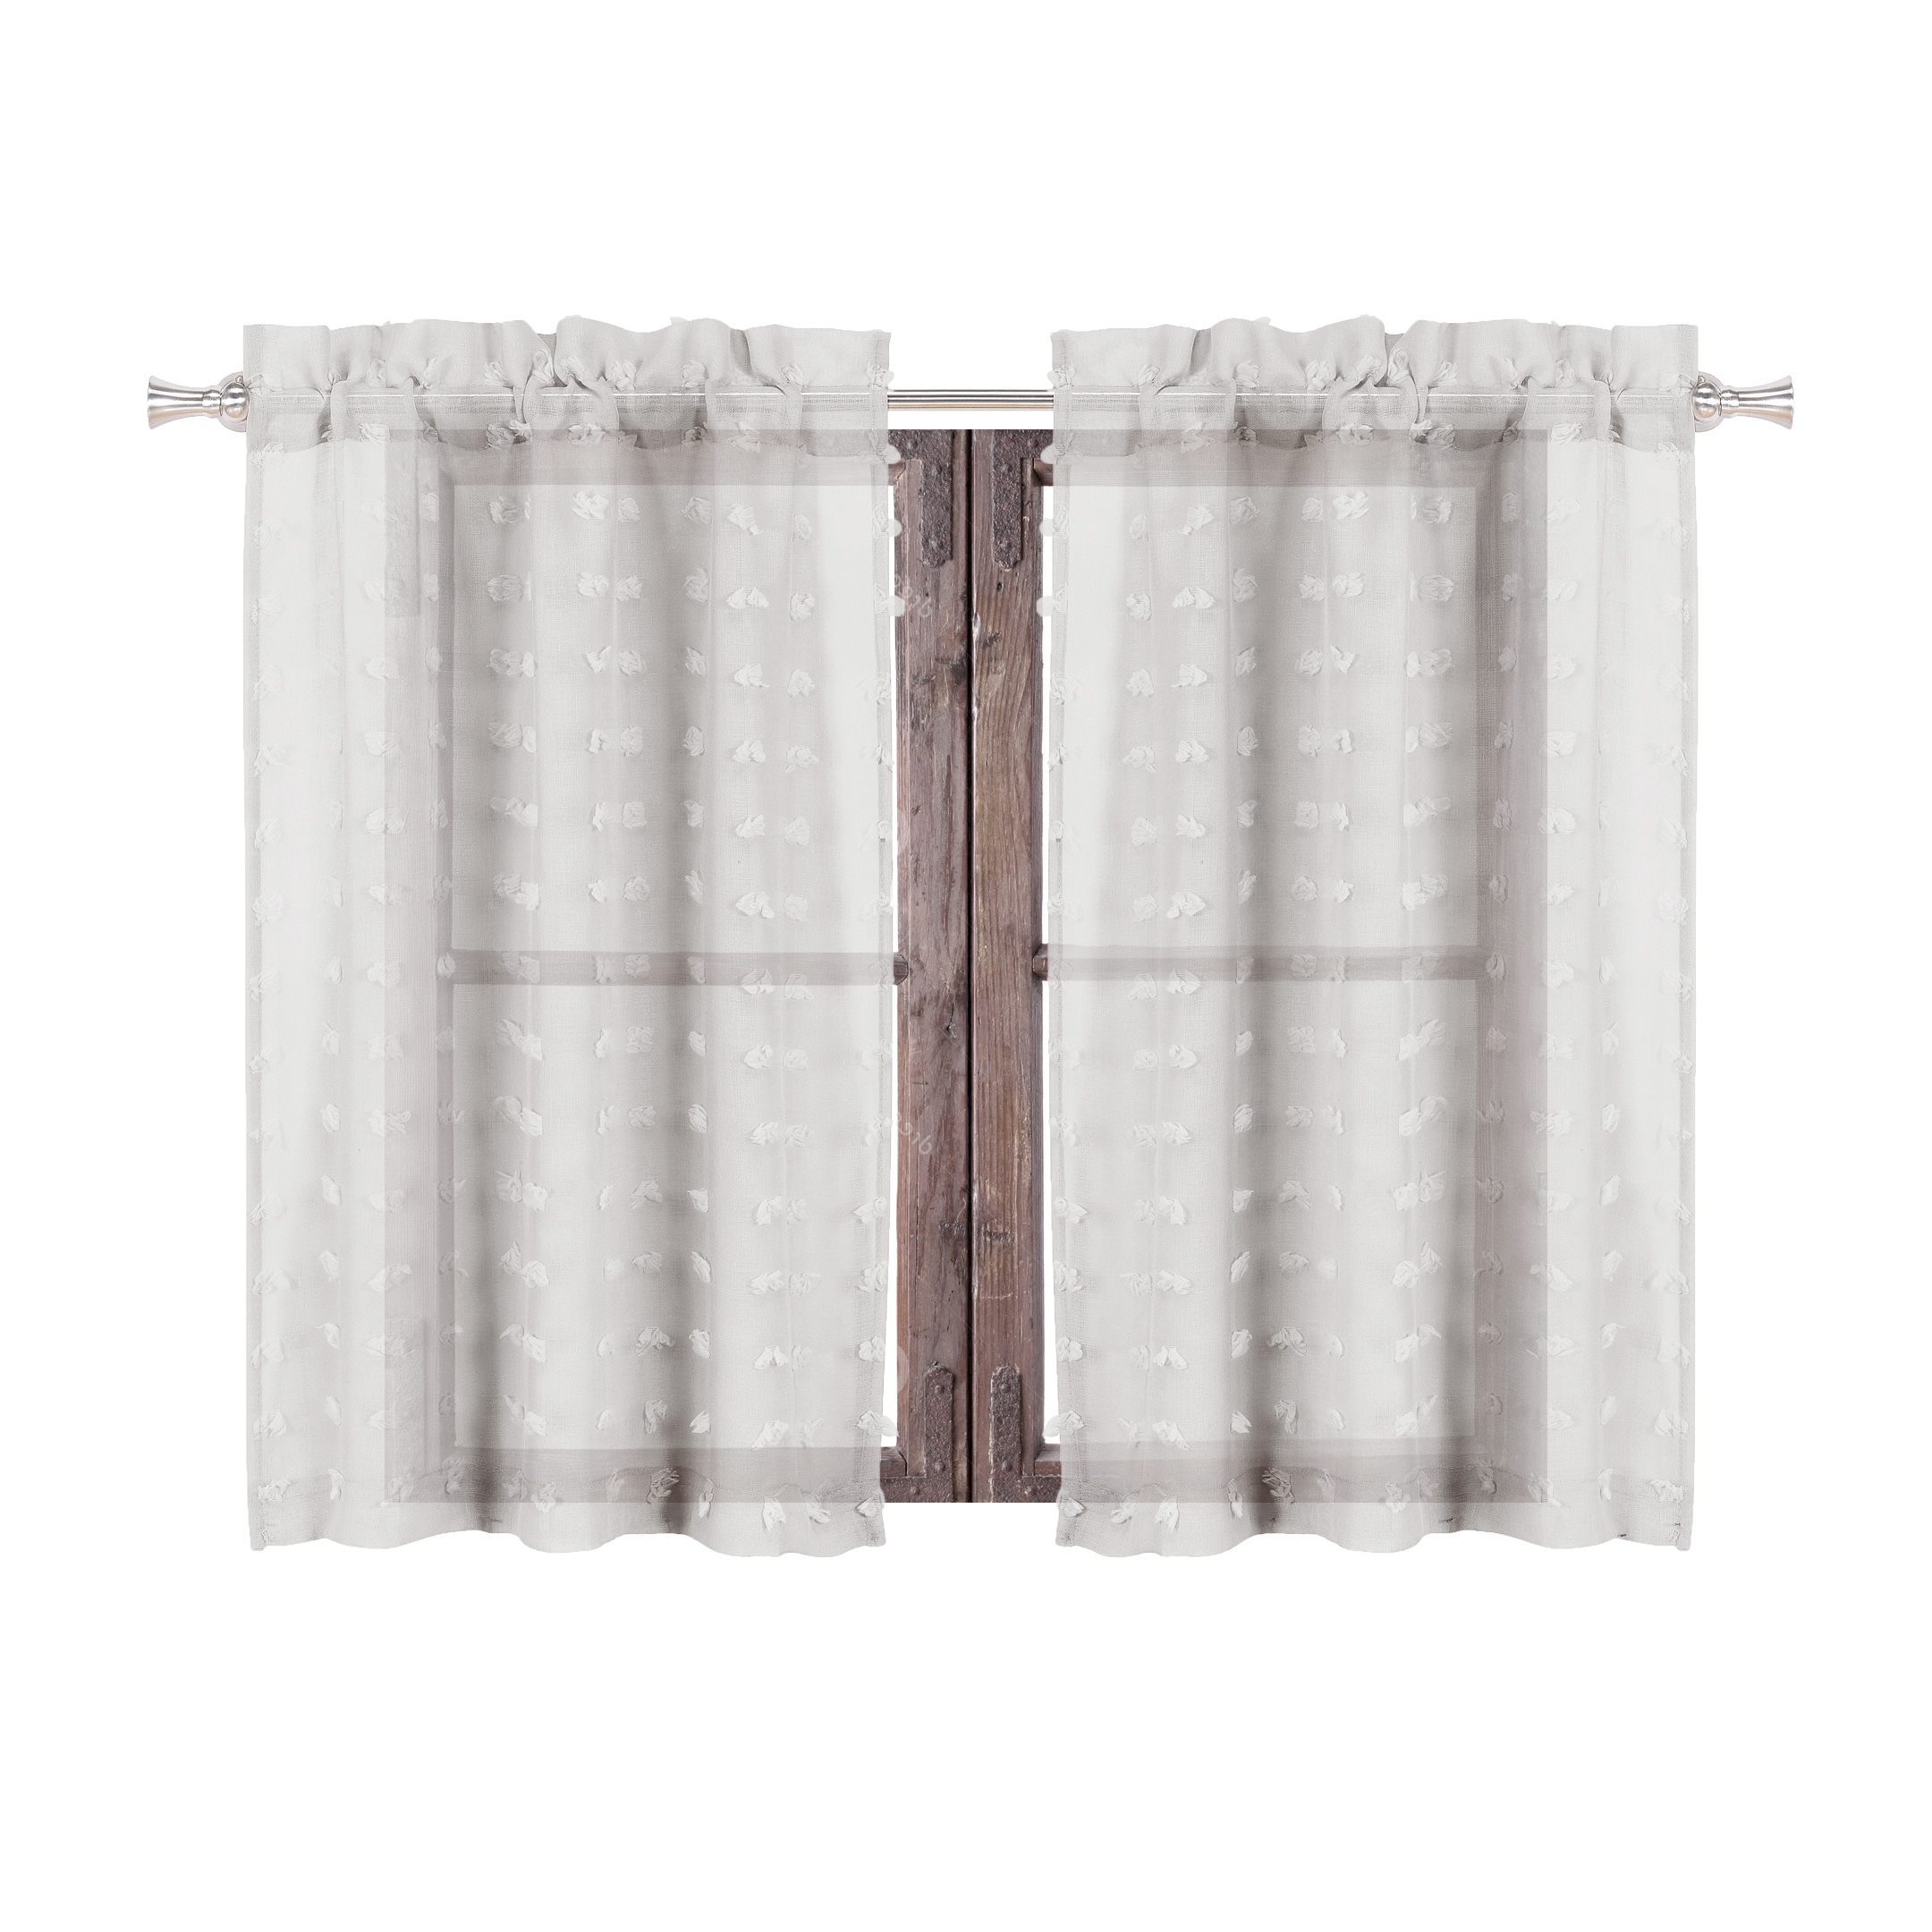 Current Cotton Blend Grey Kitchen Curtain Tiers Pertaining To Sheer 2 Piece Silver Café/tier Curtain Set: 3 D Soft Tufts (View 10 of 20)